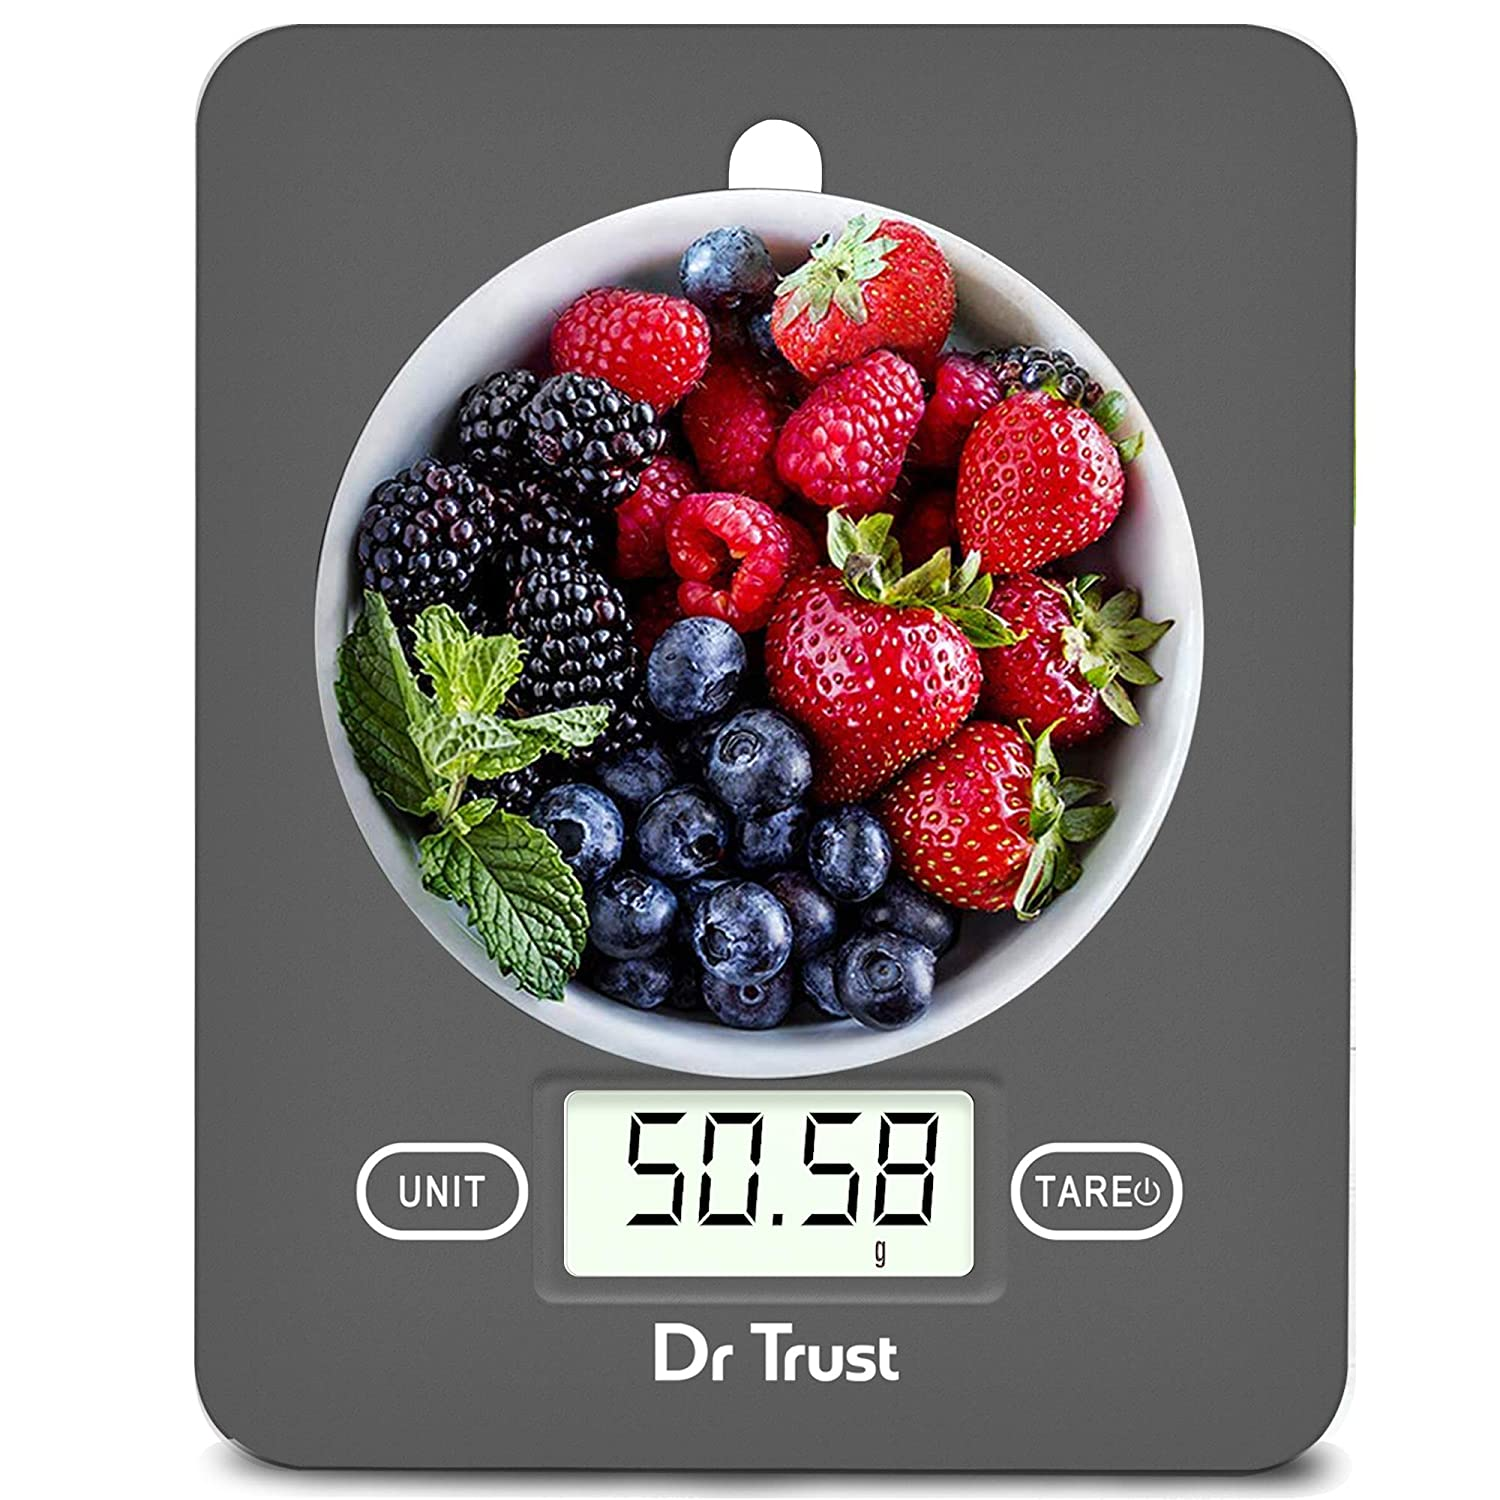 weighing machine for vegetables